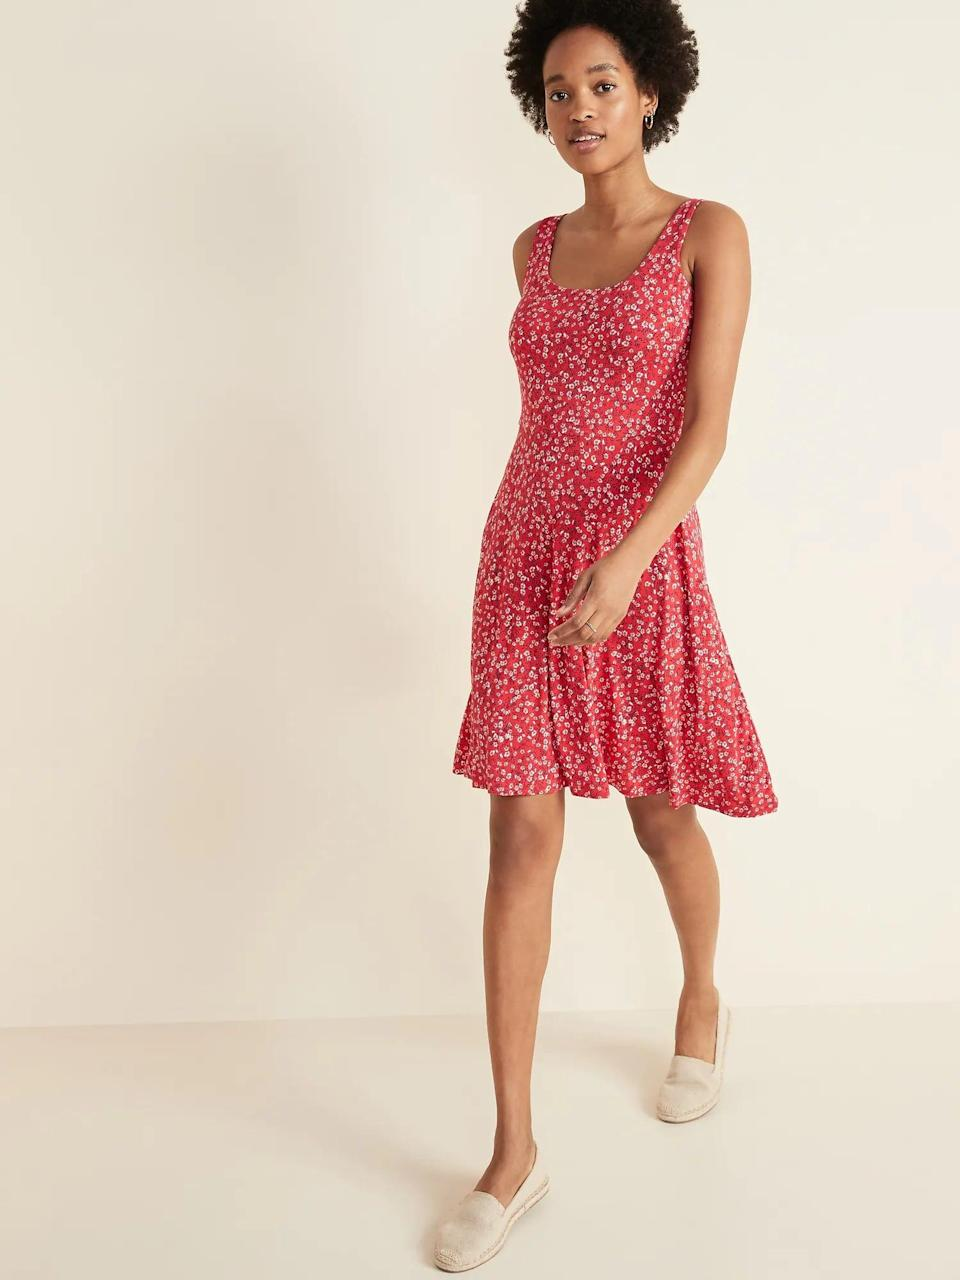 <p>Get this <span>Old Navy Sleeveless Fit &amp; Flare Jersey Dress</span> ($30) for hot days.</p>